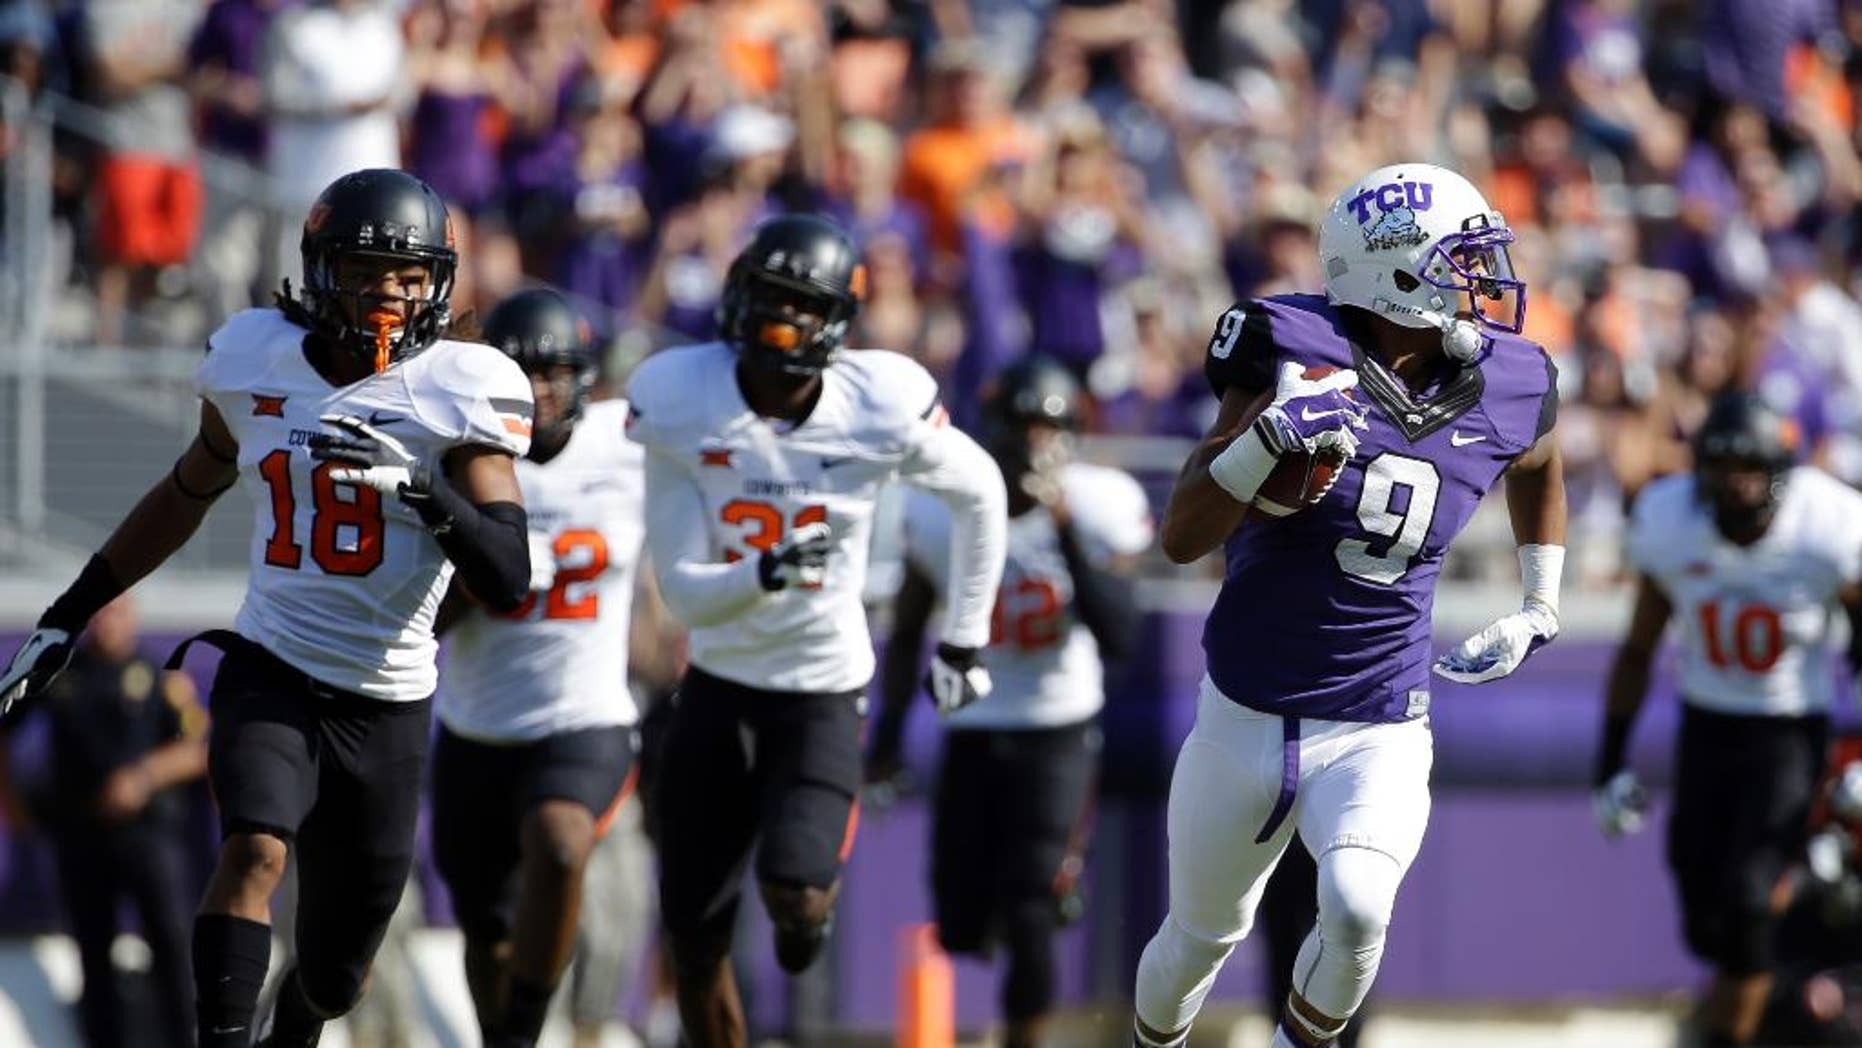 Oklahoma State cornerback Ramon Richards (18) and others give chase after TCU's Josh Doctson (9) after Doctson grabbed a pass and sprinted to the end zone for a score in the first half of an NCAA college football game, Saturday, Oct. 18, 2014, in Fort Worth, Texas. (AP Photo/Tony Gutierrez)